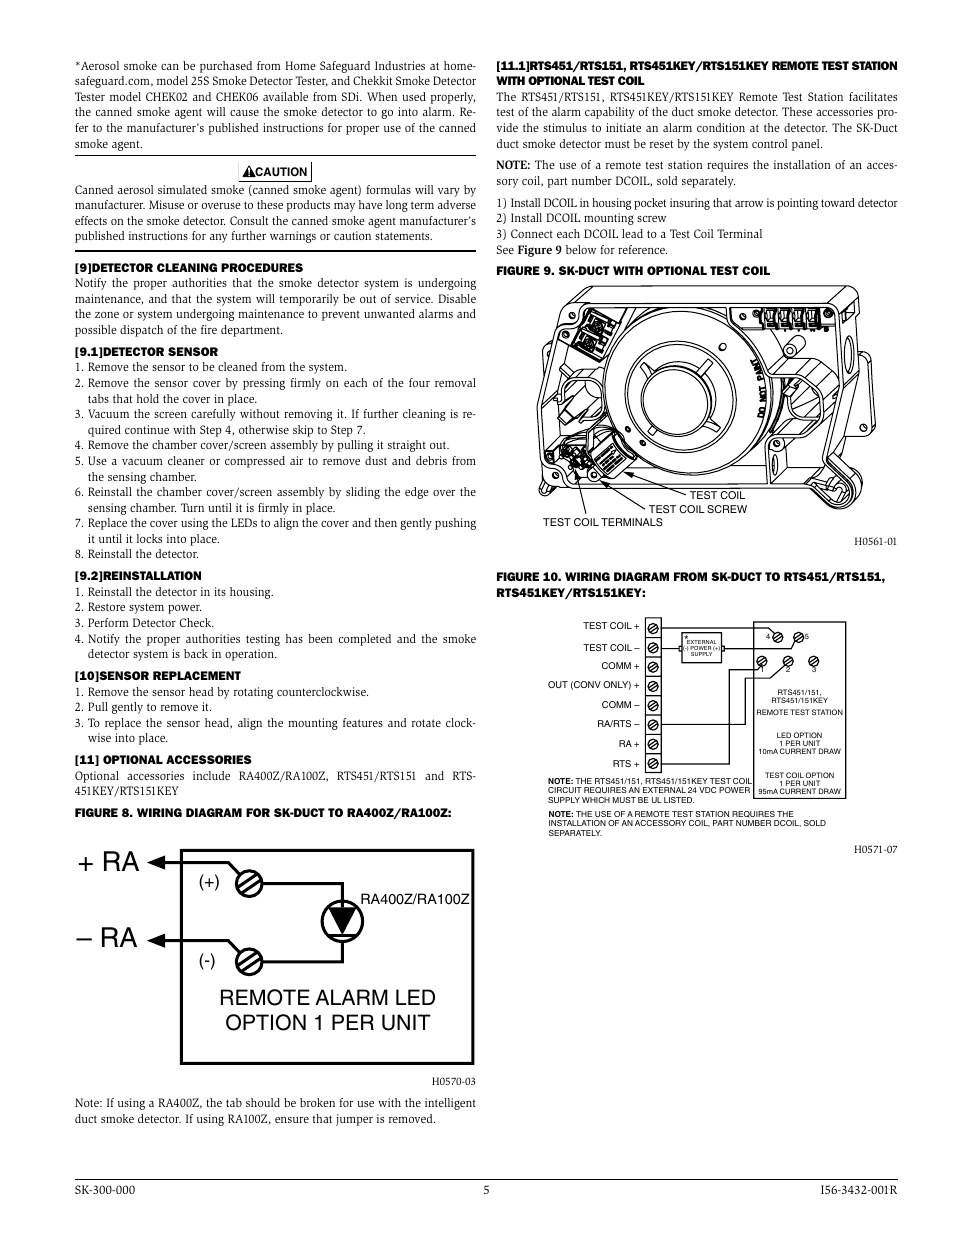 silentknight sk duct addressable photoelectric duct detector page5?resize\\=665%2C861 vista 100 wiring diagram lighting diagrams, friendship bracelet ademco vista 100 wiring diagram at couponss.co